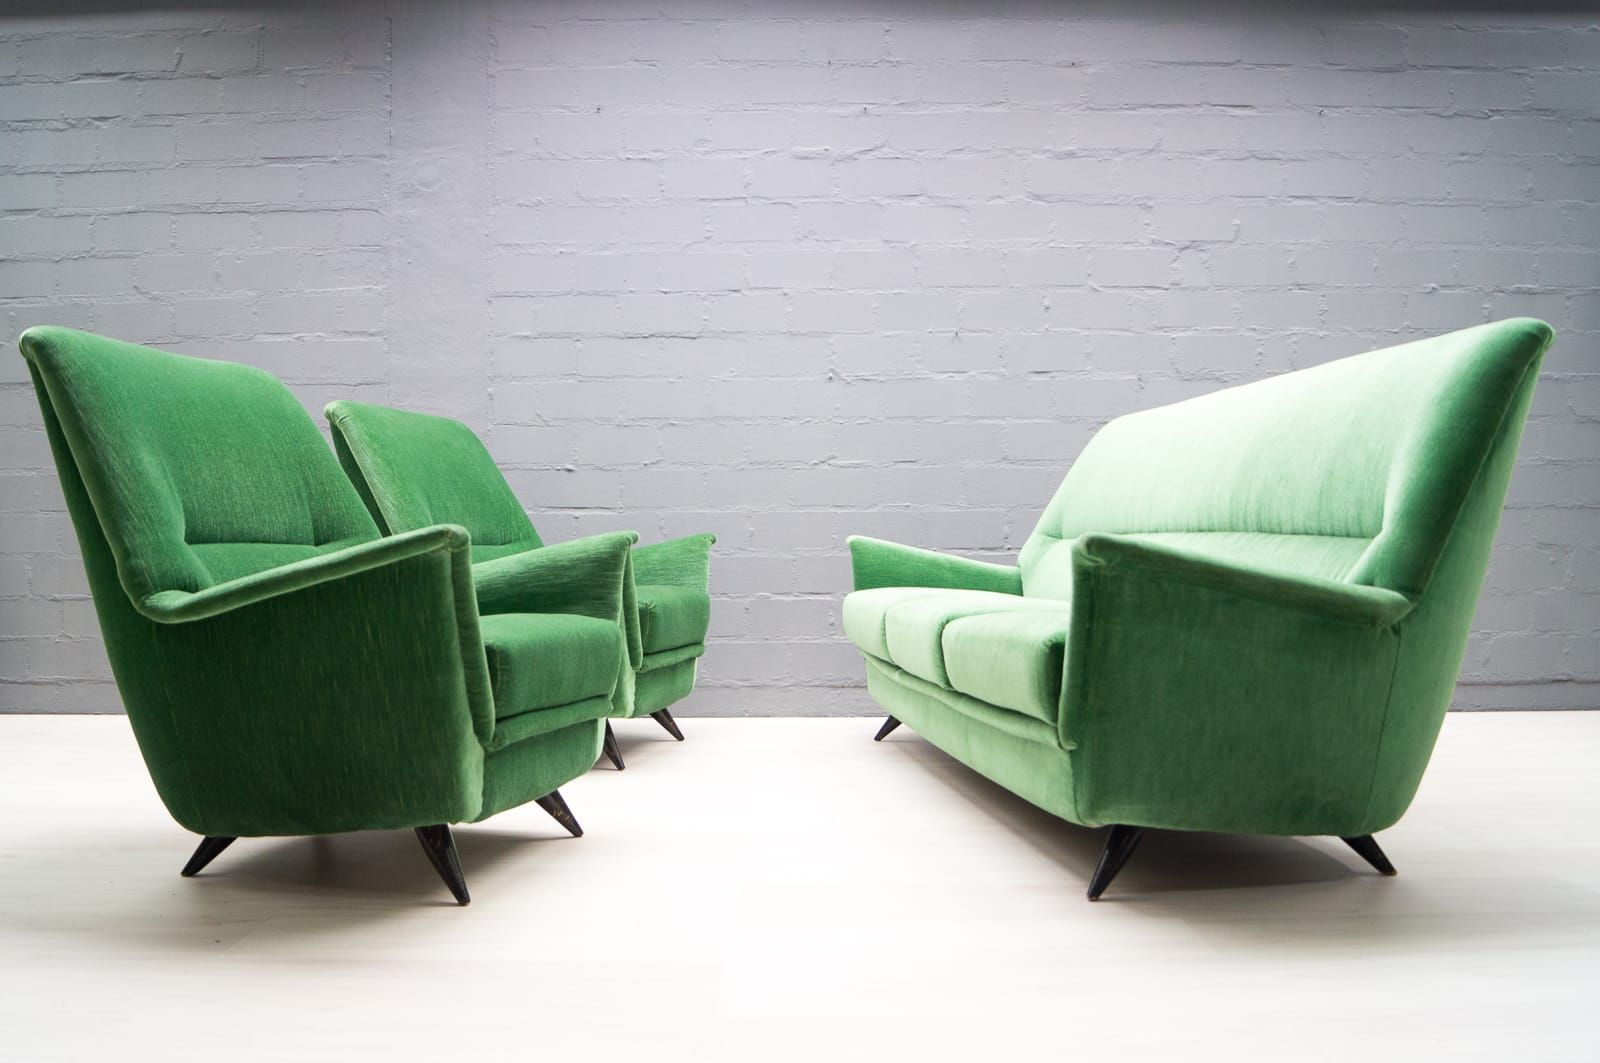 Italian Living Room Set in Apple Green, 1950s for sale at Pamono